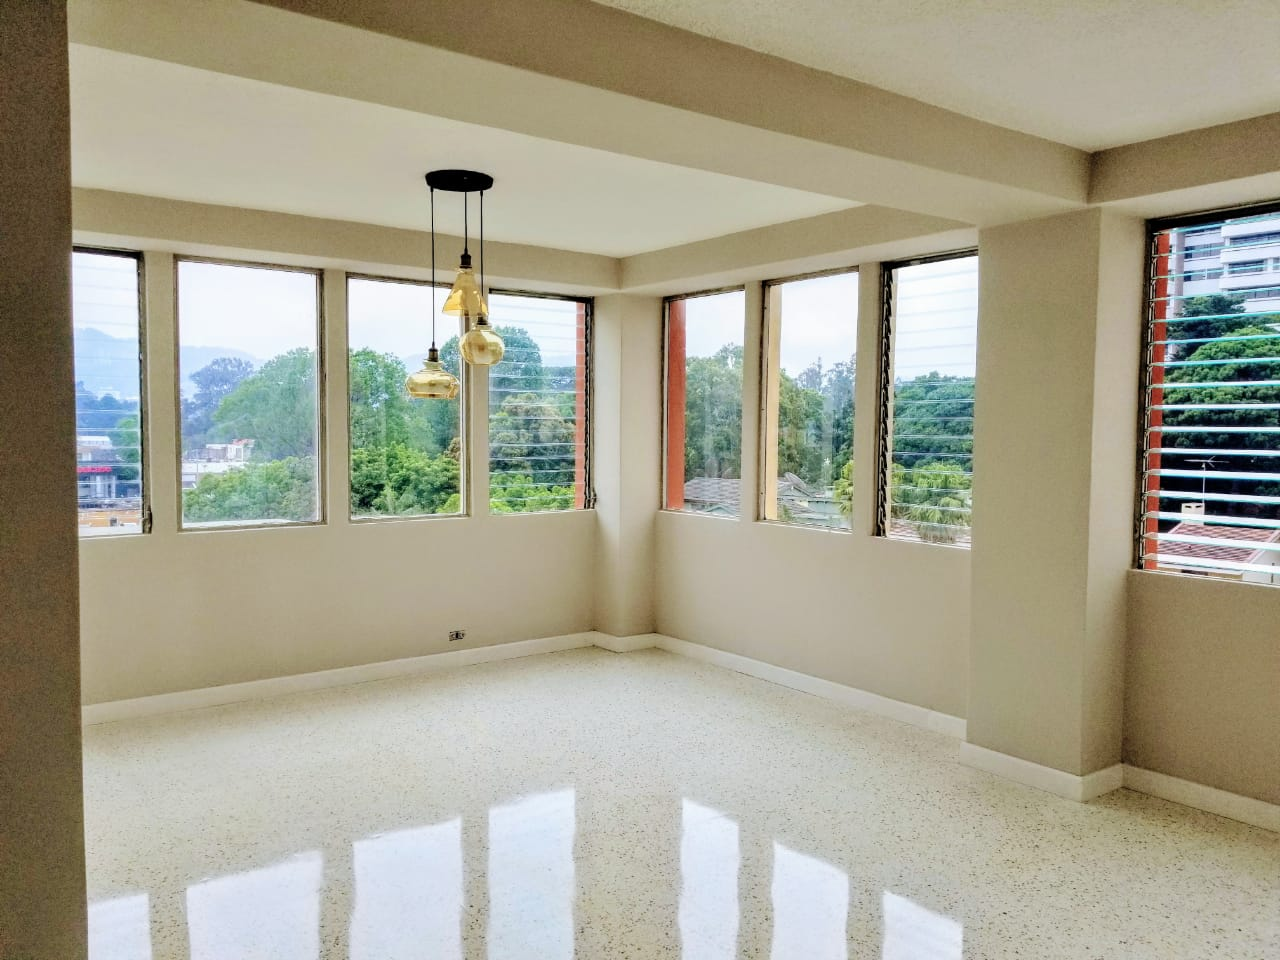 5095 NICE APARTMENT FOR SALE IN ZONA 10 GUATEMALA